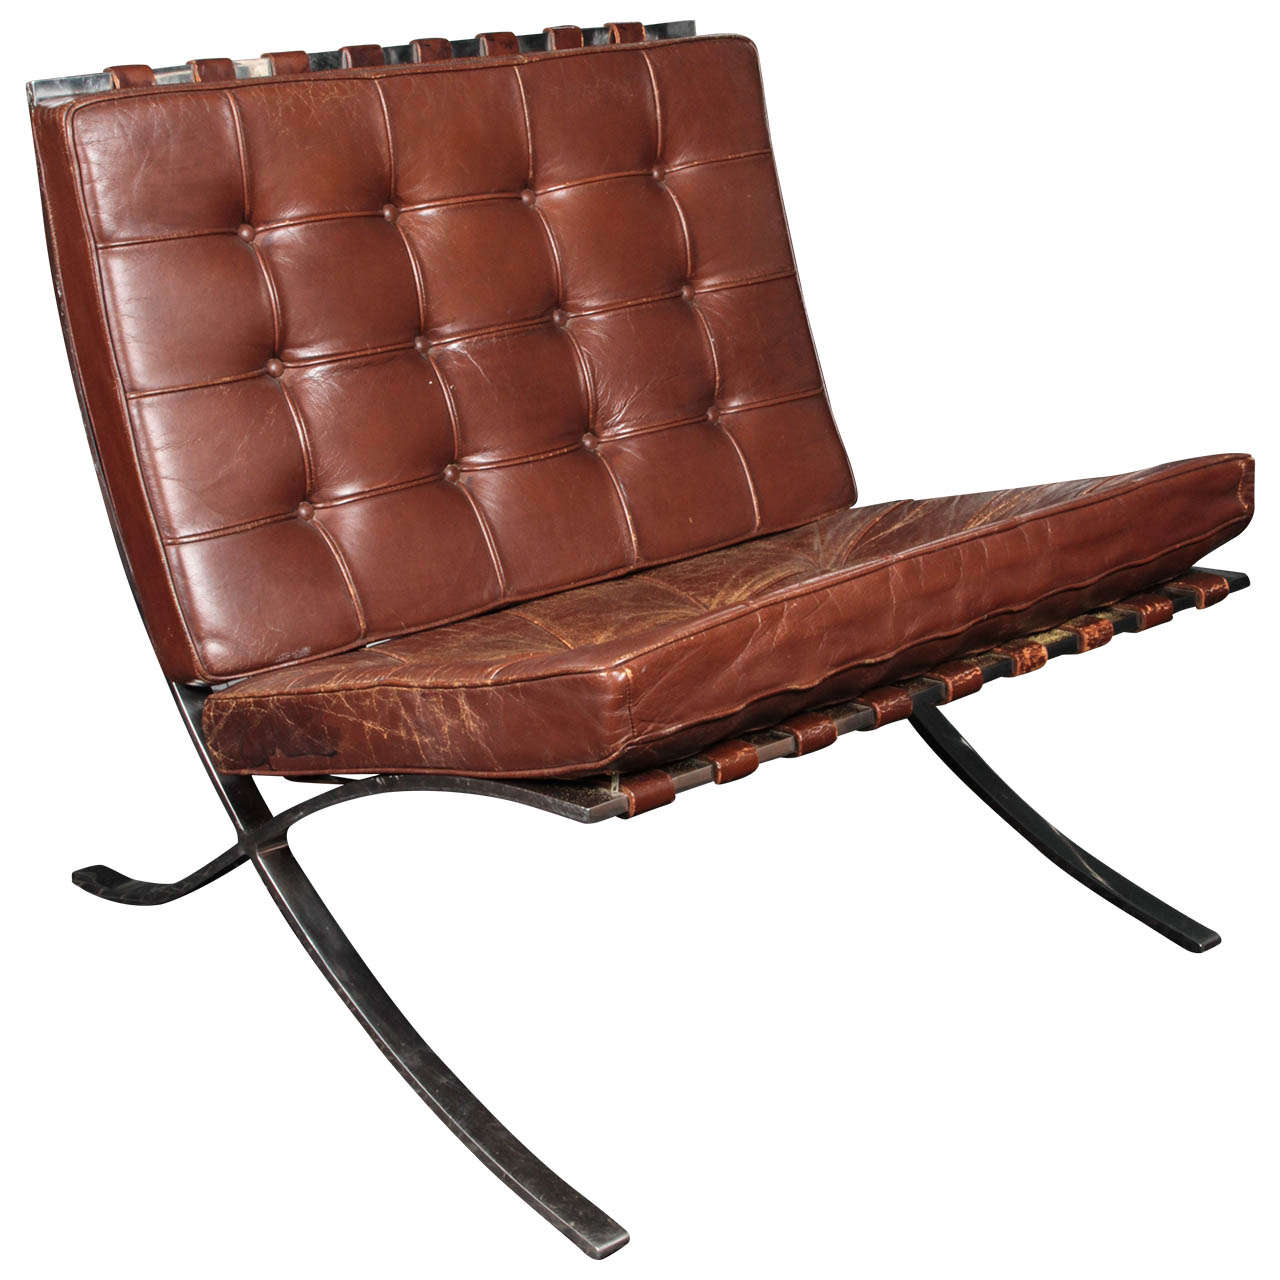 Brown leather barcelona chair by ludwig mies van der rohe for knoll 1